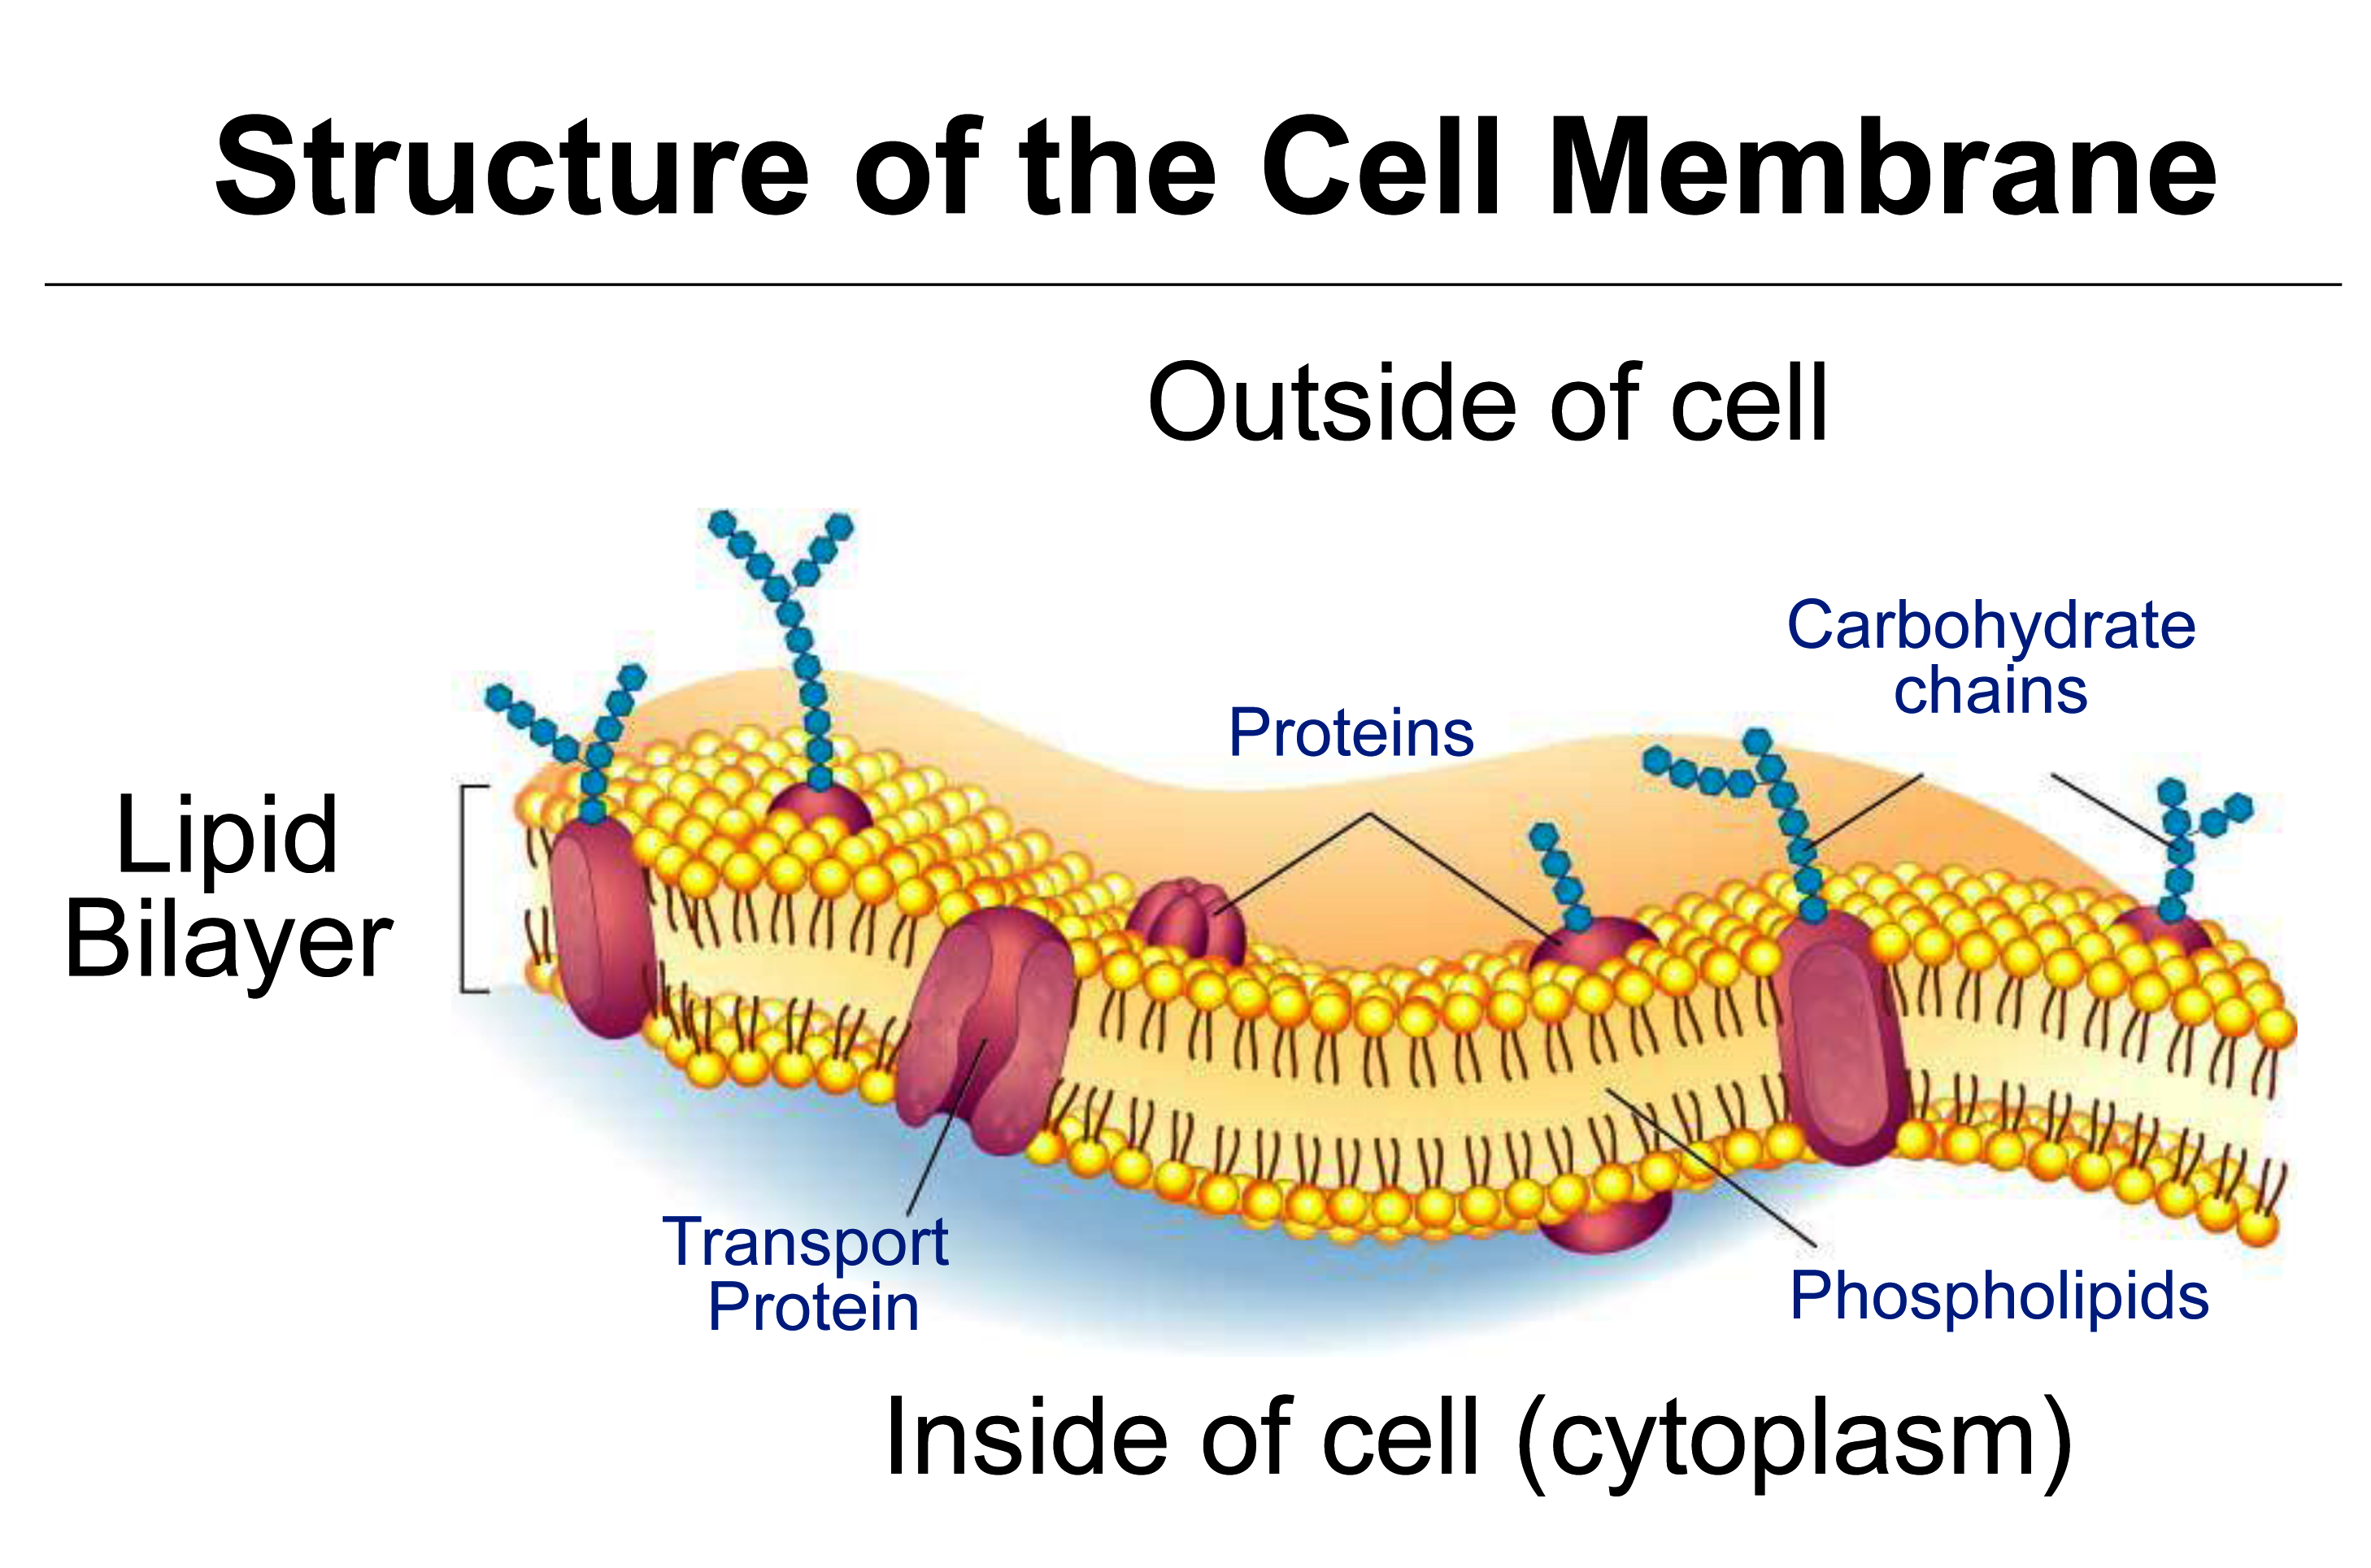 Cell Membrane Controls what enters and exits the cell